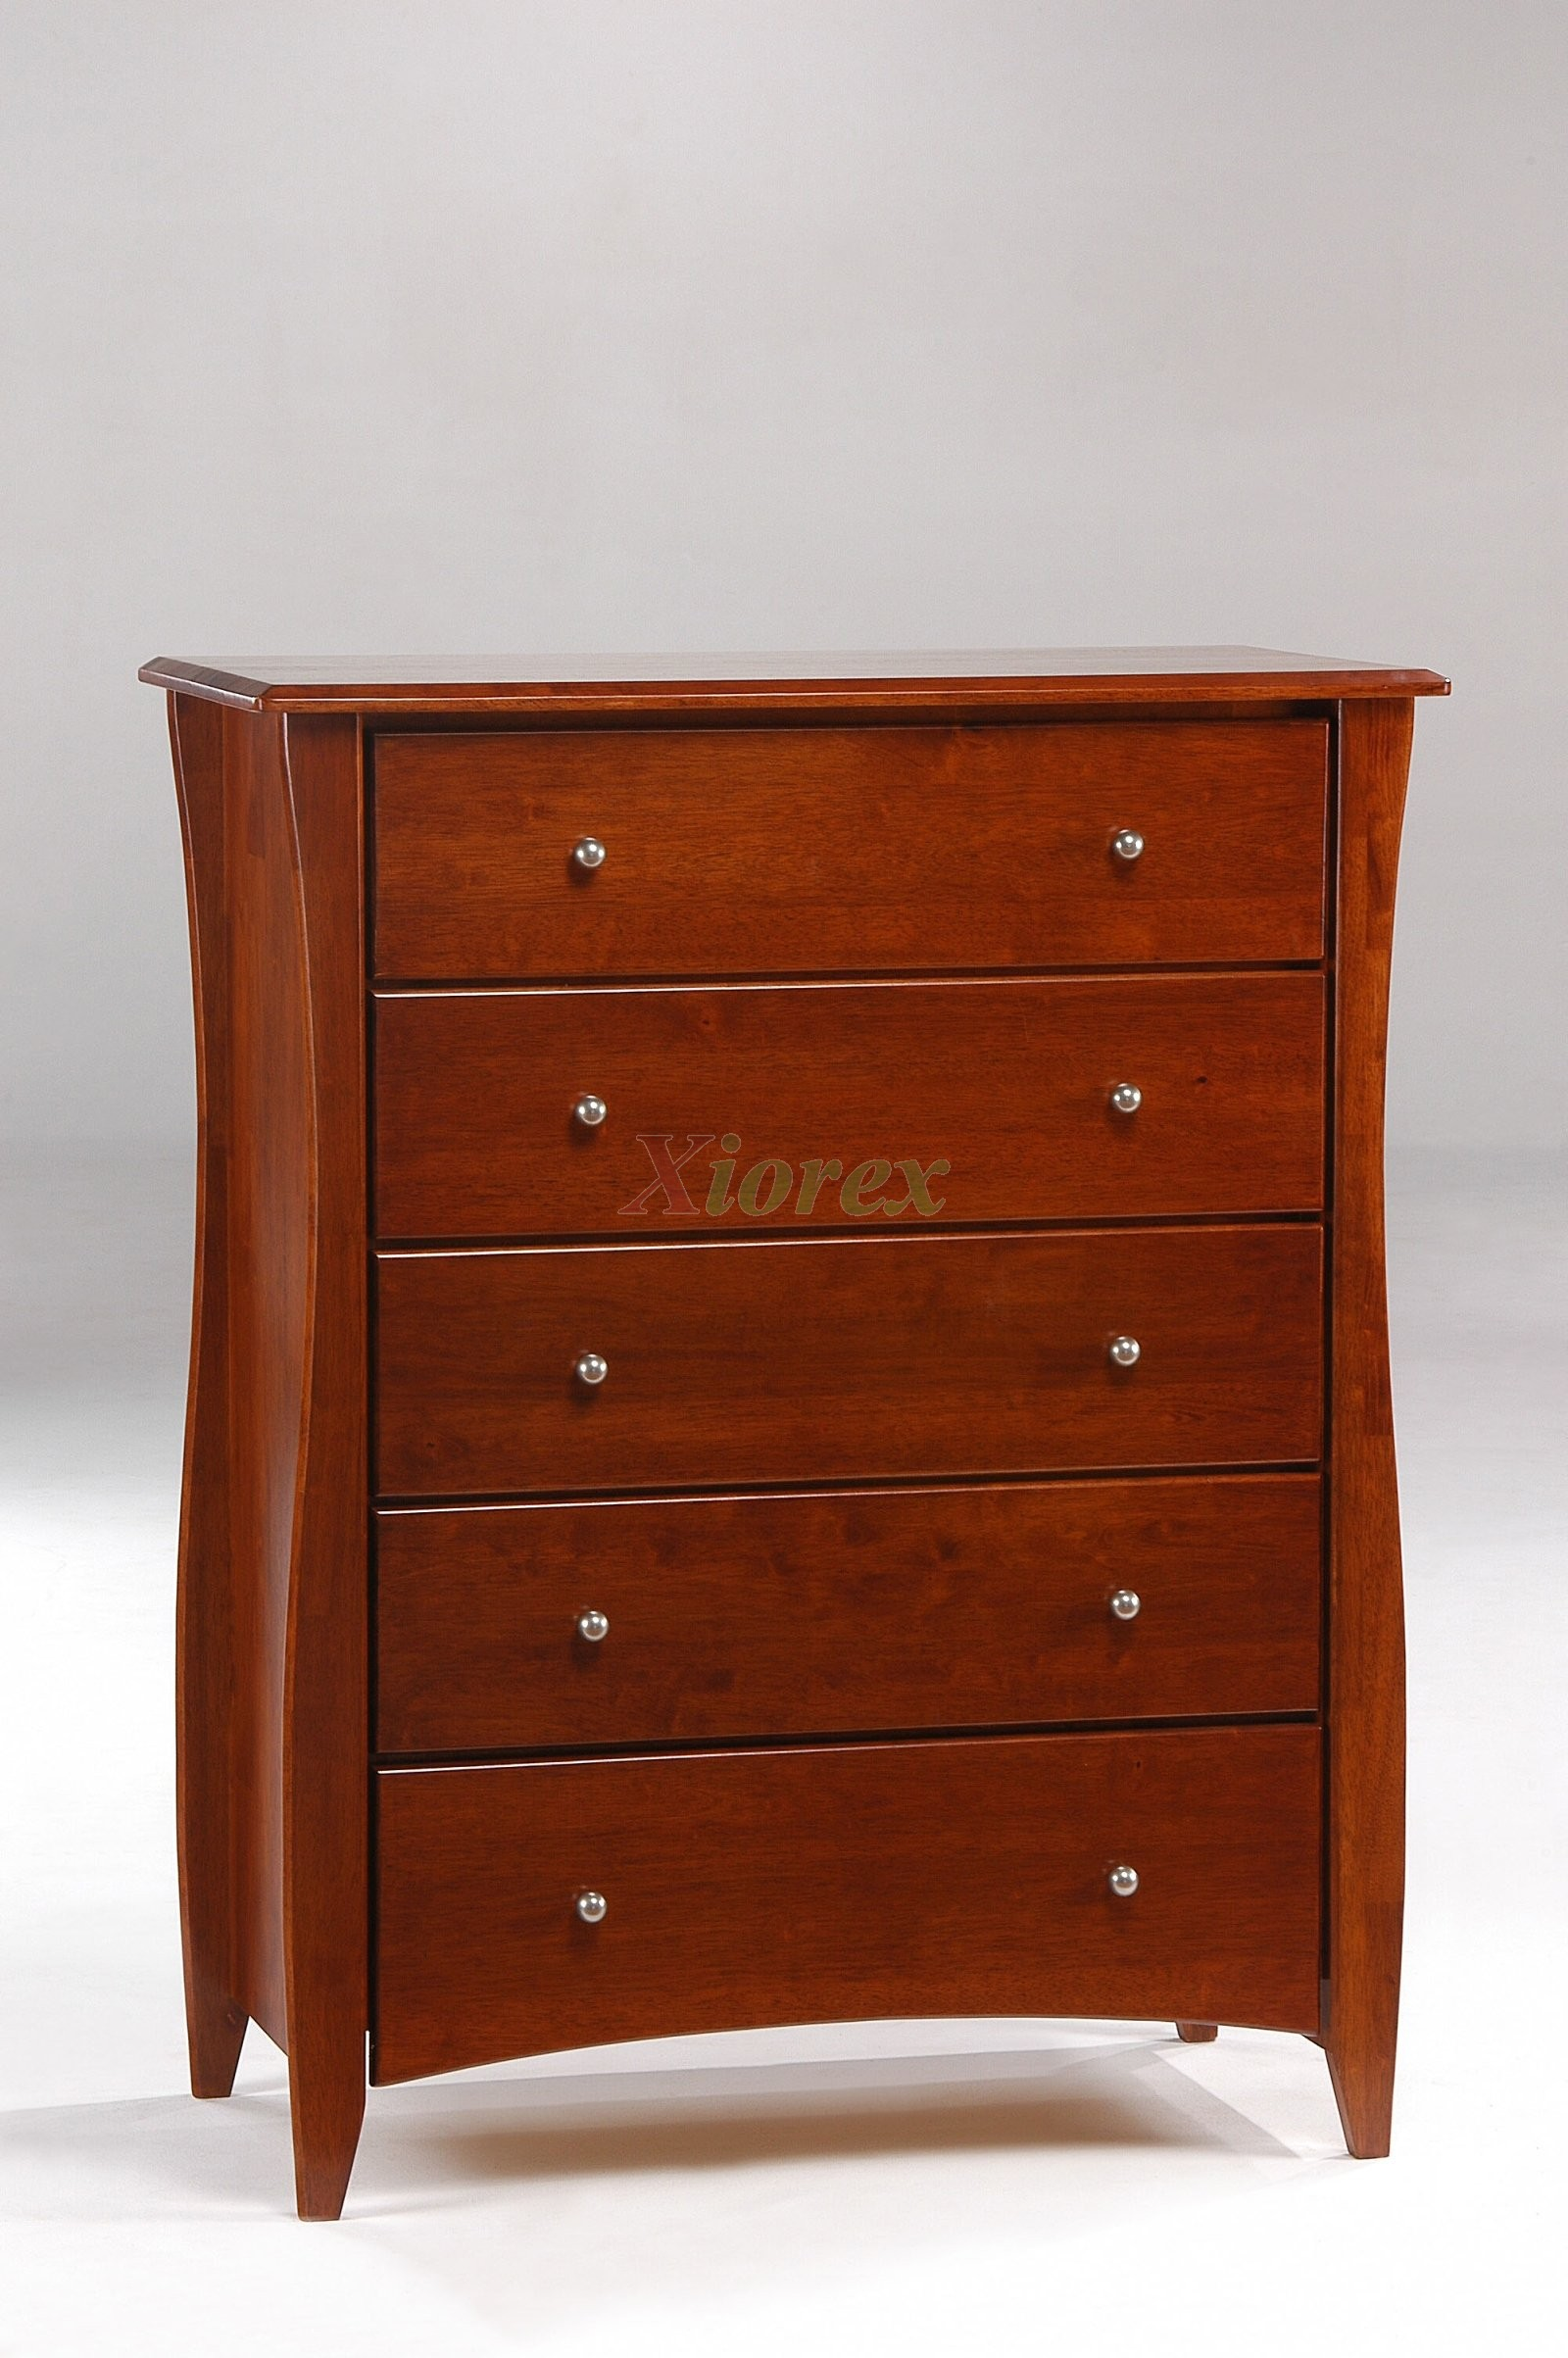 Clove Chest Of Drawers Cherry For Es Bedroom Furniture Sets Xiorex